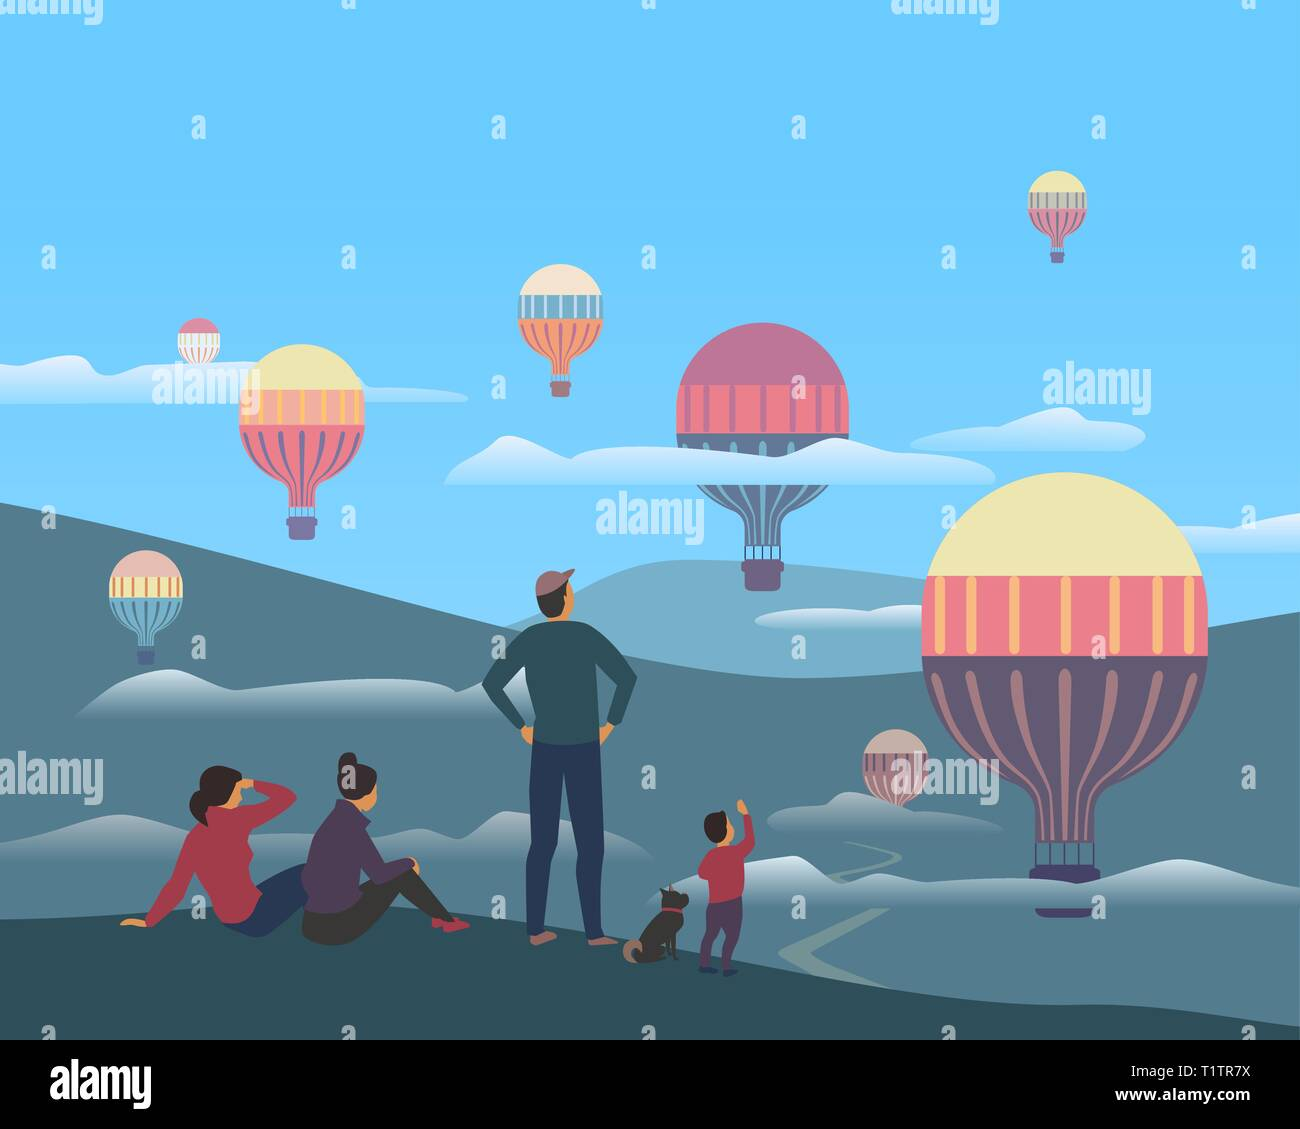 Hot air balloons flight in mountains valley. Stylized outdoor poster. Flying ballon holiday flat cartoon. Travellers enjoy adventure of ballooning fli - Stock Vector